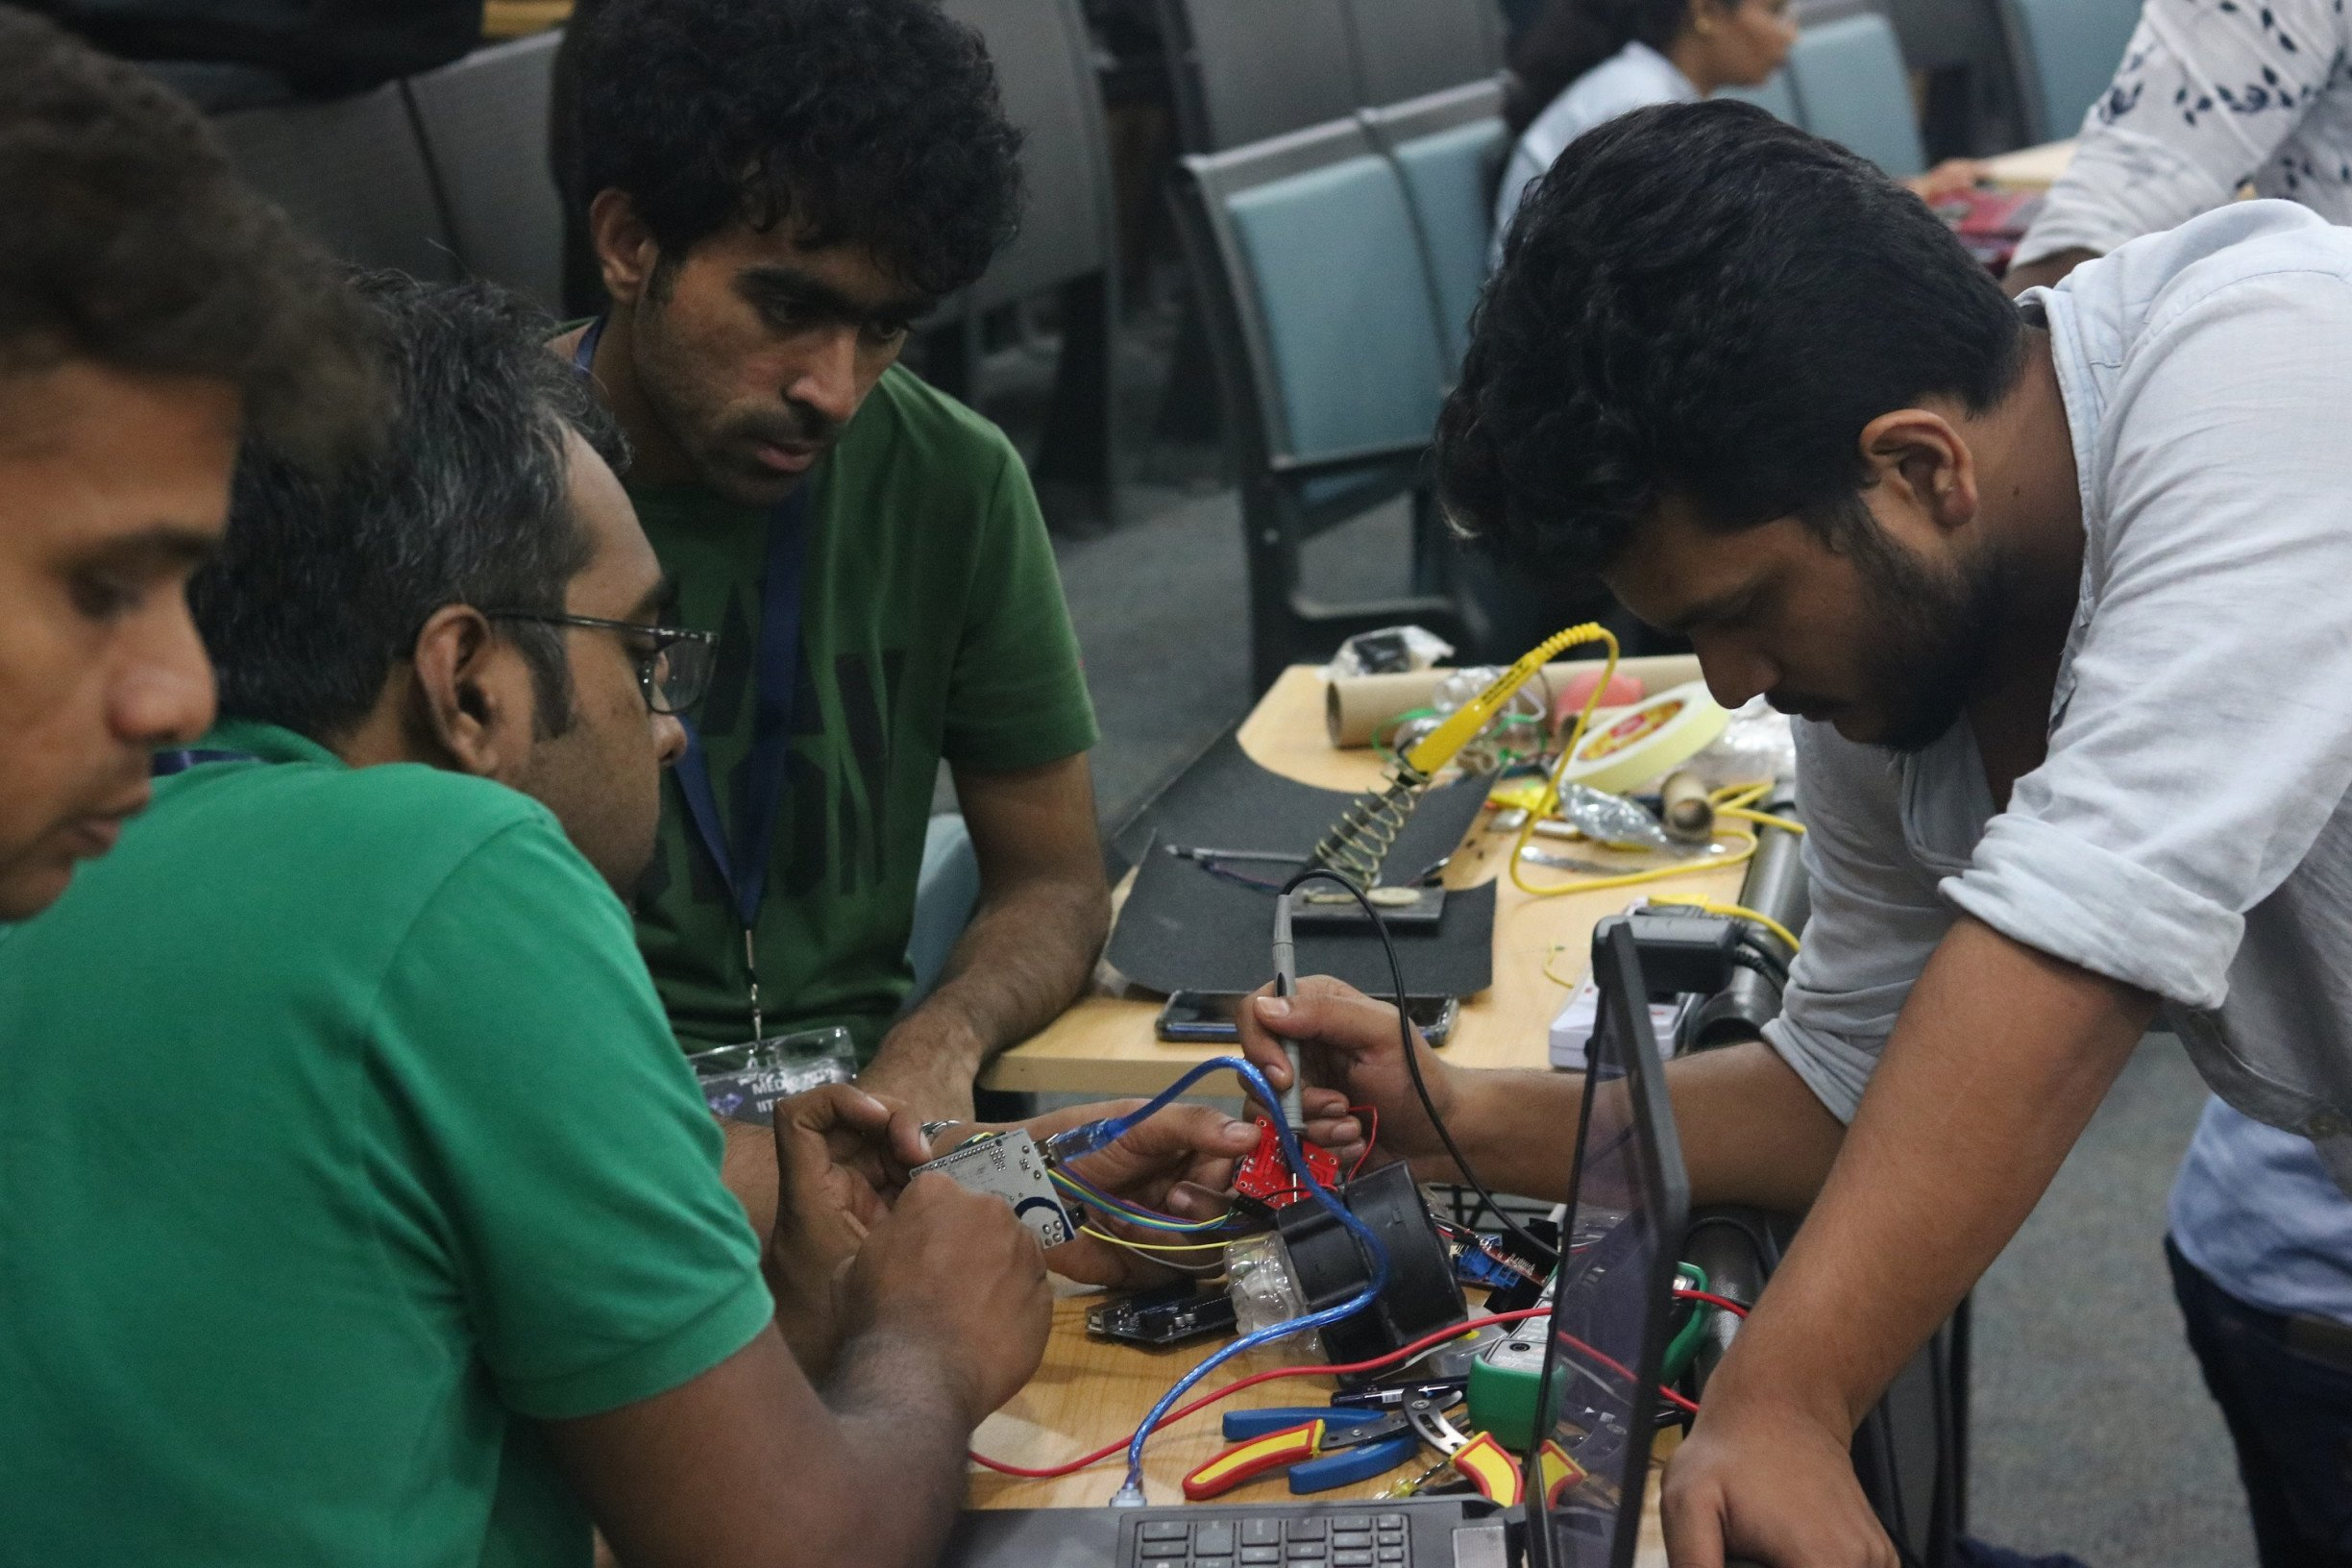 15 Novel Medical Devices Conceived within 100 Hours at Camp in IIT Bombay